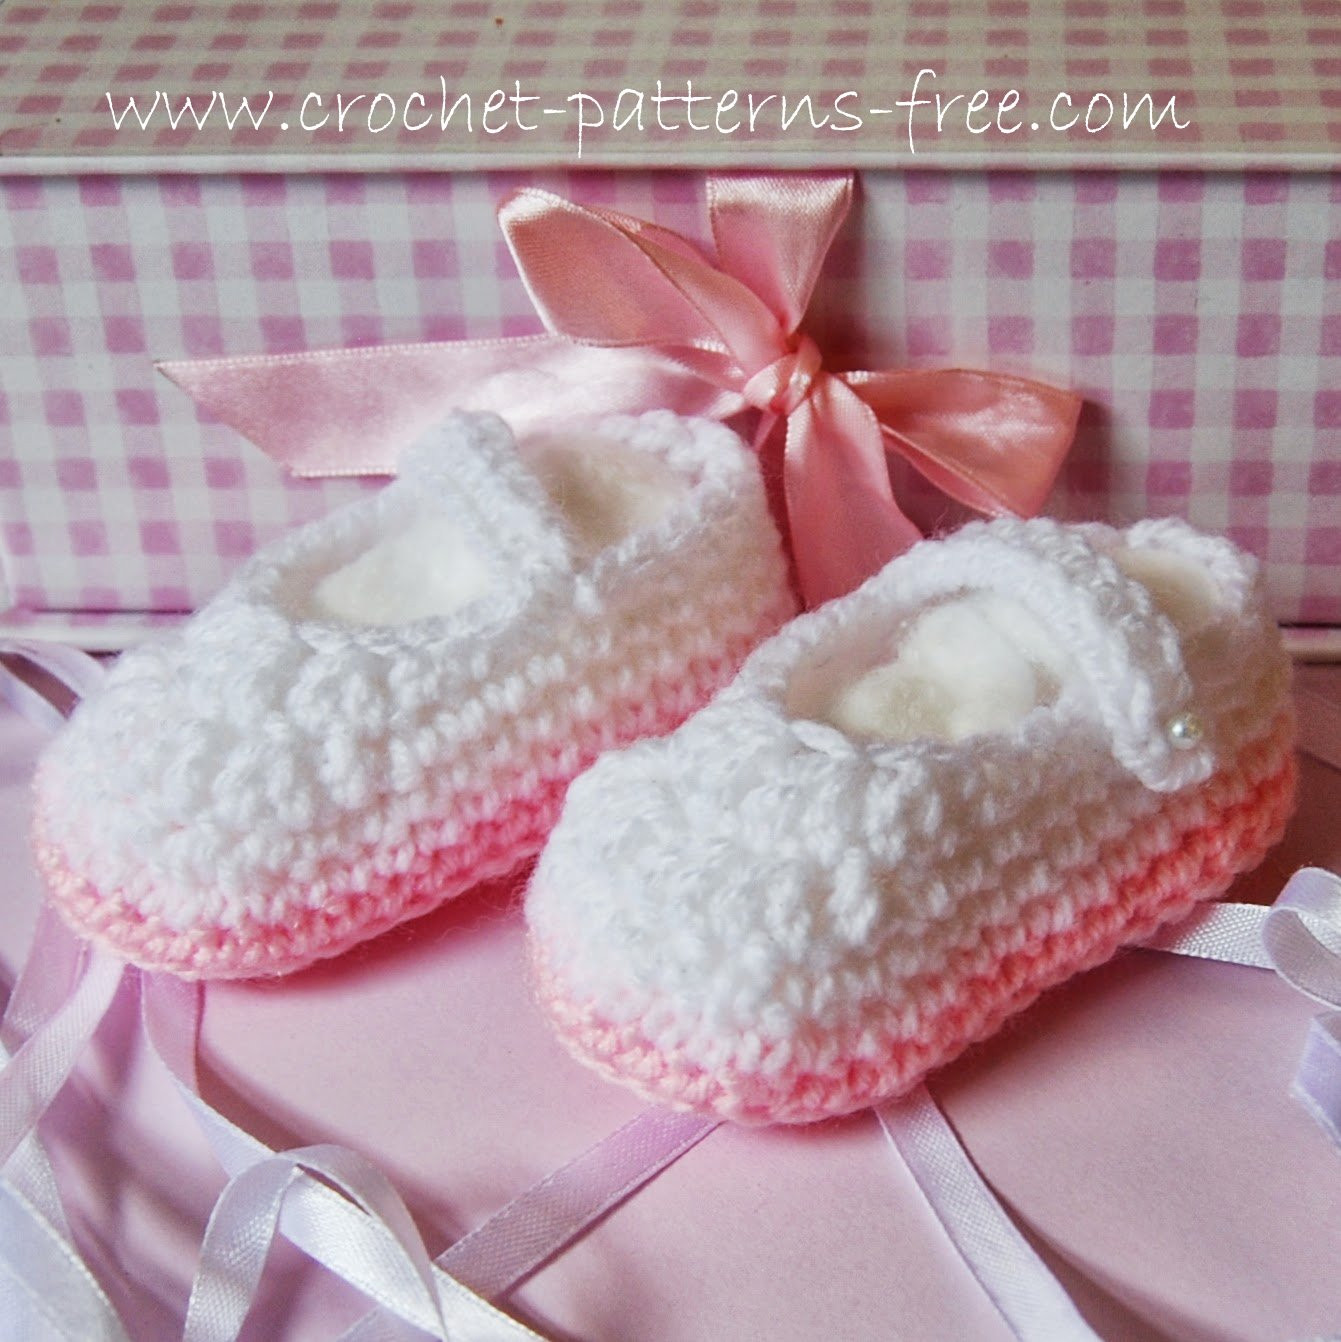 Free Crochet Patterns for Baby Booties Luxury Free Crochet Patterns and Designs by Lisaauch Baby Bootie Of Luxury 40 Pictures Free Crochet Patterns for Baby Booties